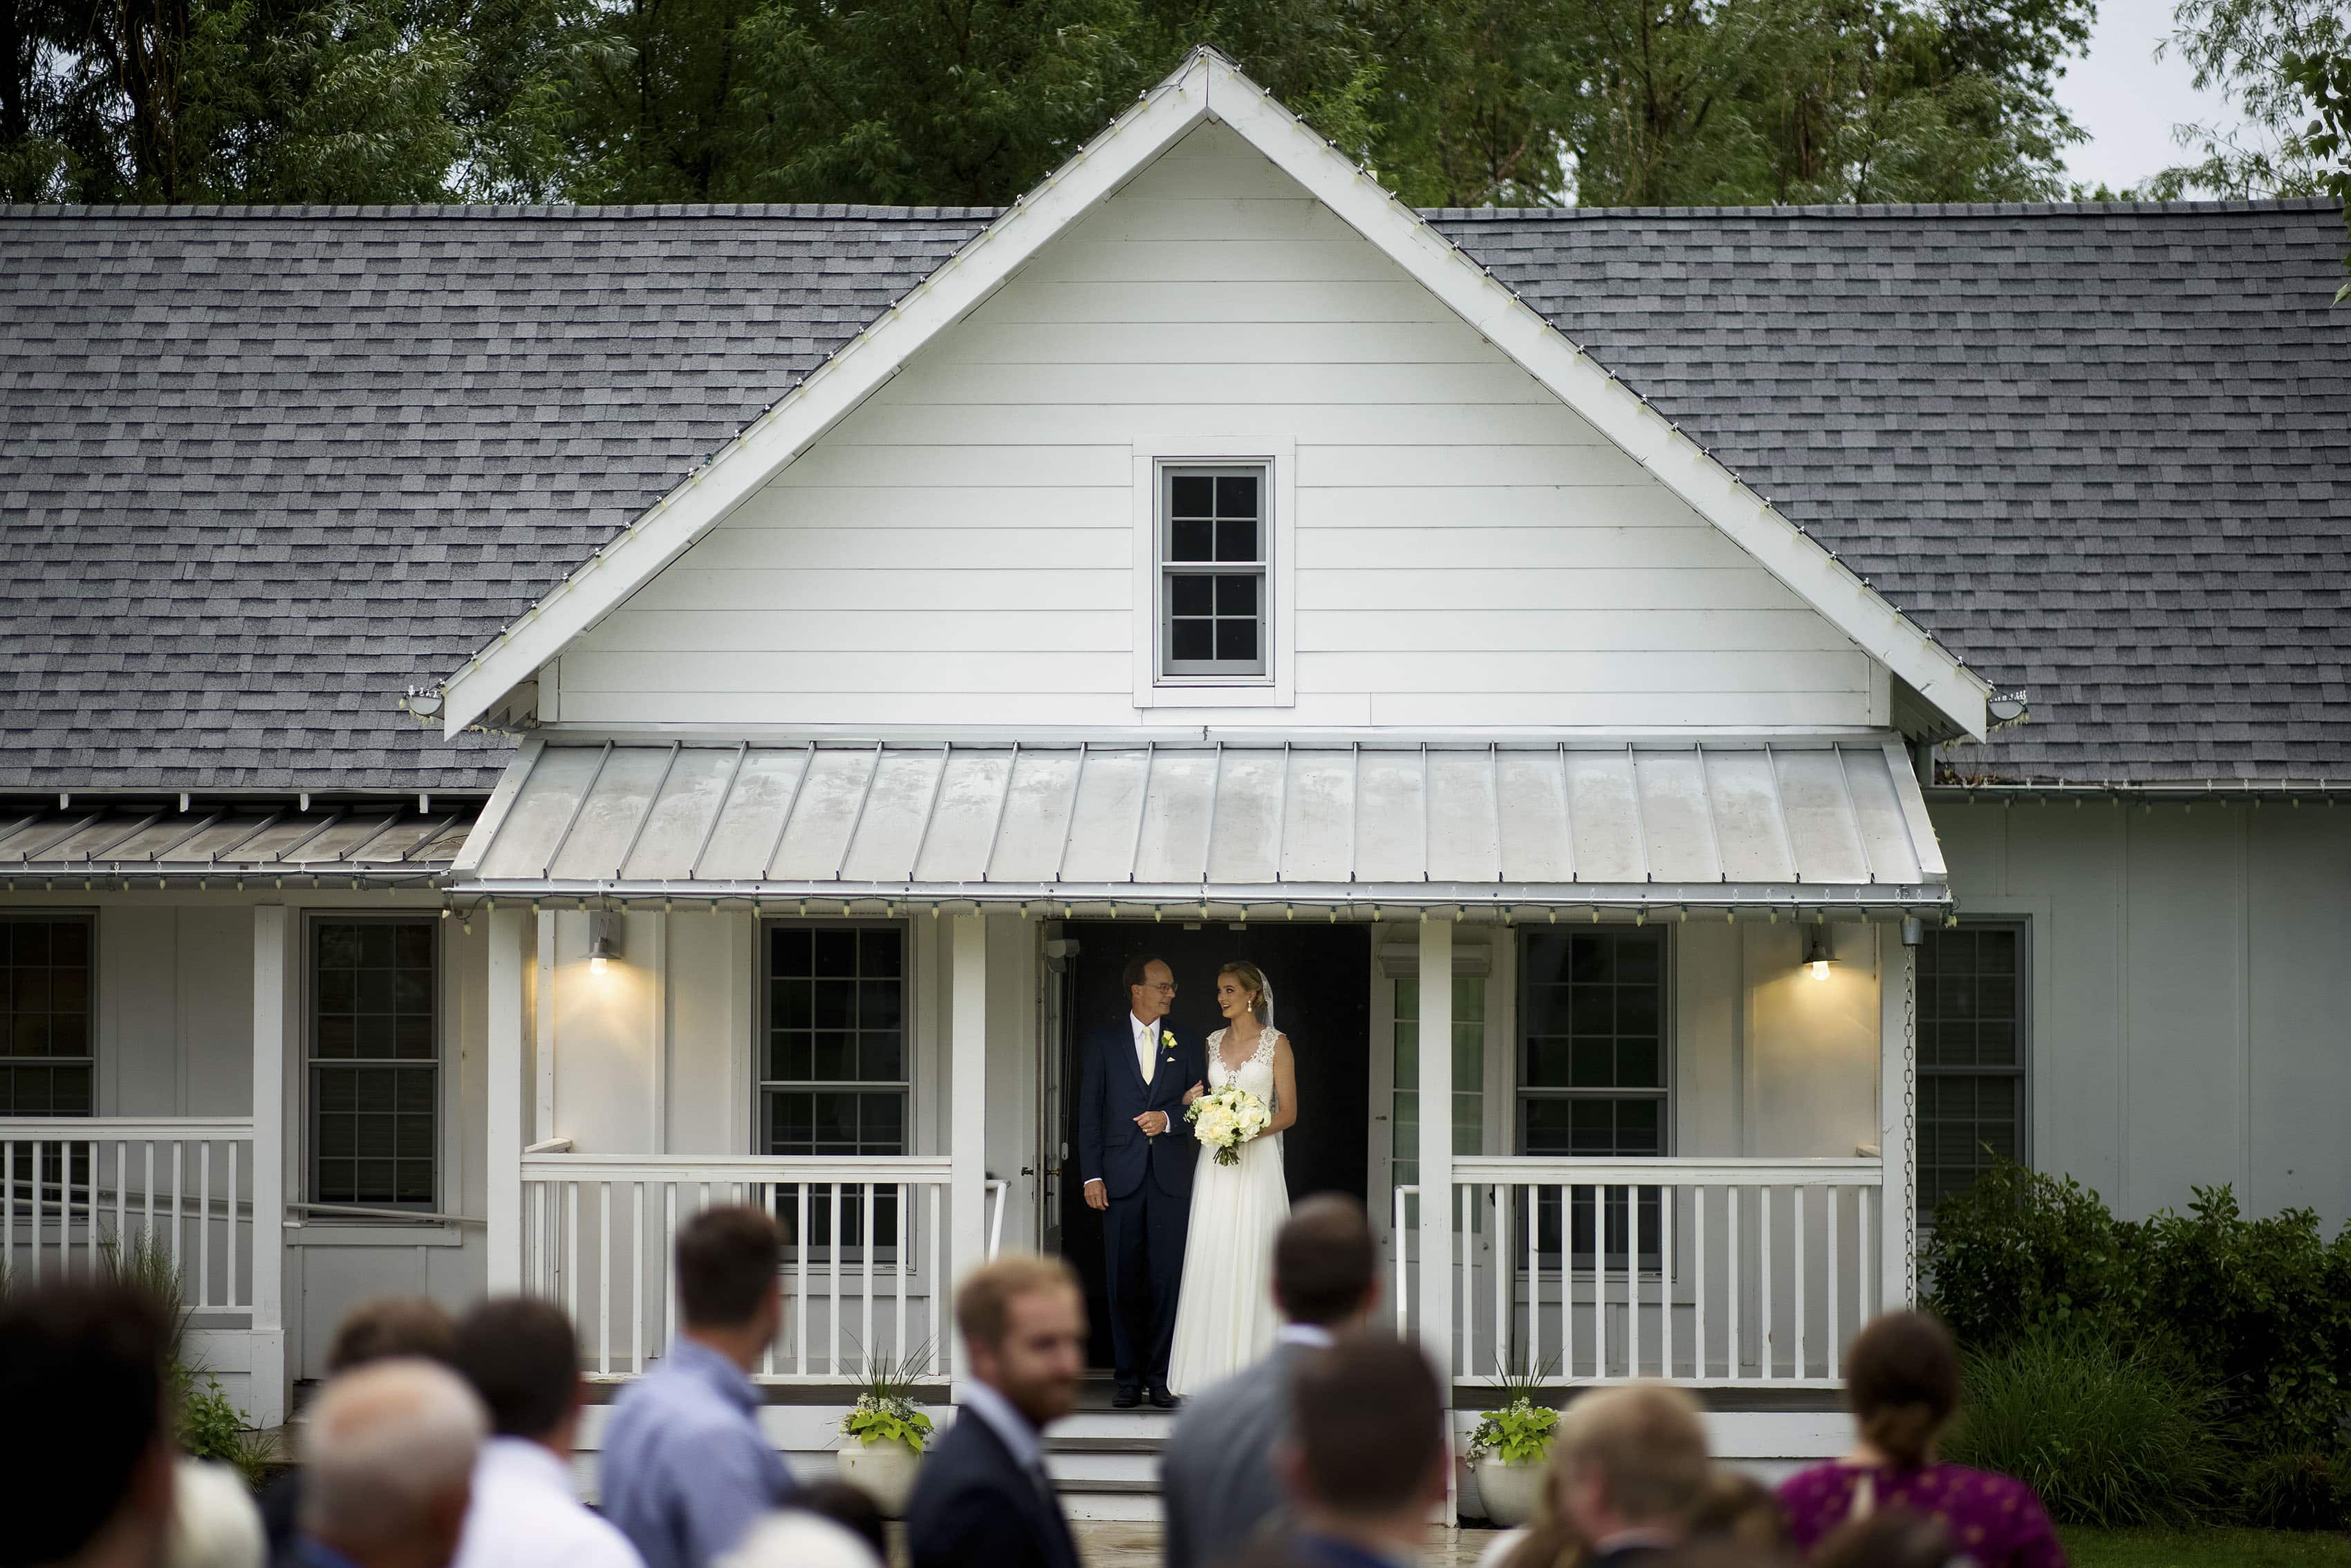 The bride and her father exit the bridal cottage during the wedding ceremony at the barn at raccoon creek